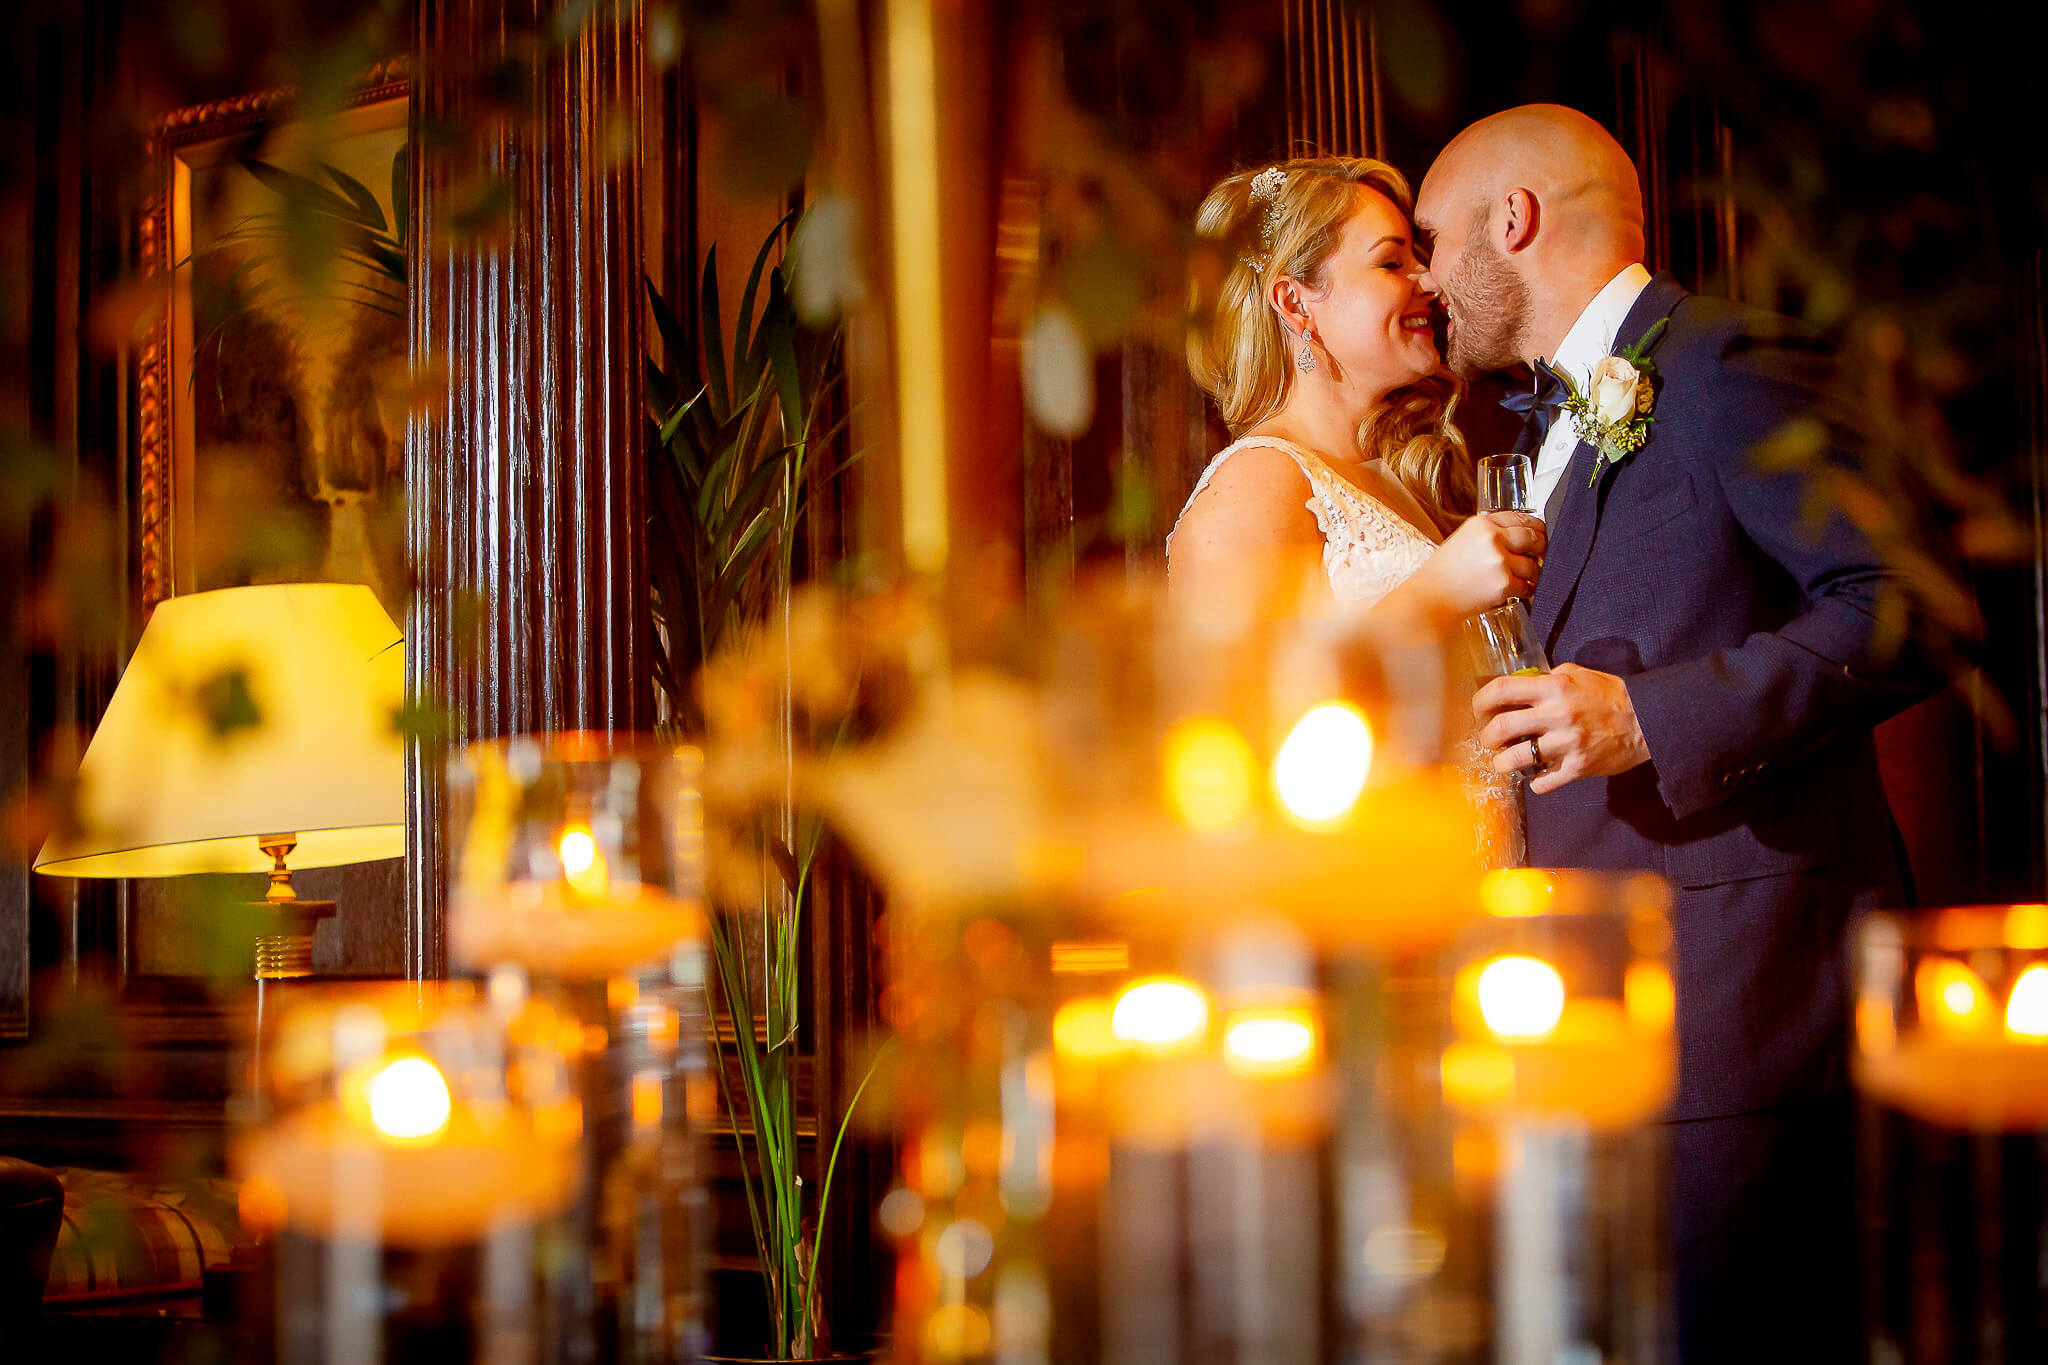 best-wedding-photographers-uk-europe-stanbury-photography-151